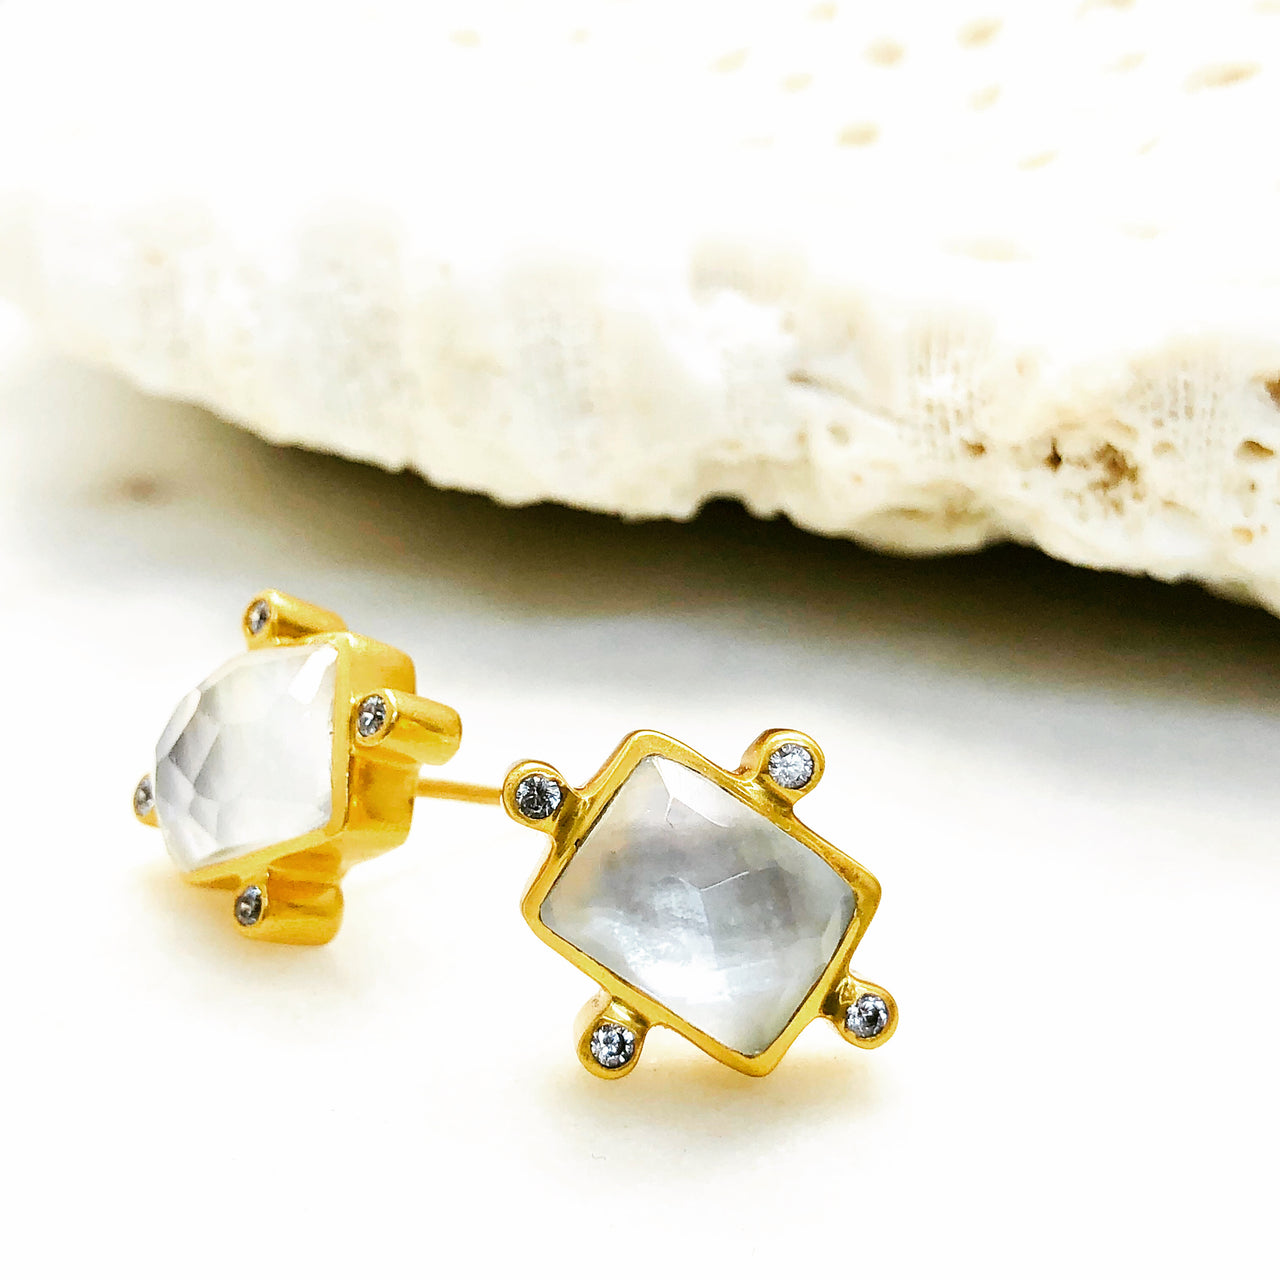 Gold Plated Mother of Pearl and Quartz Earrings.